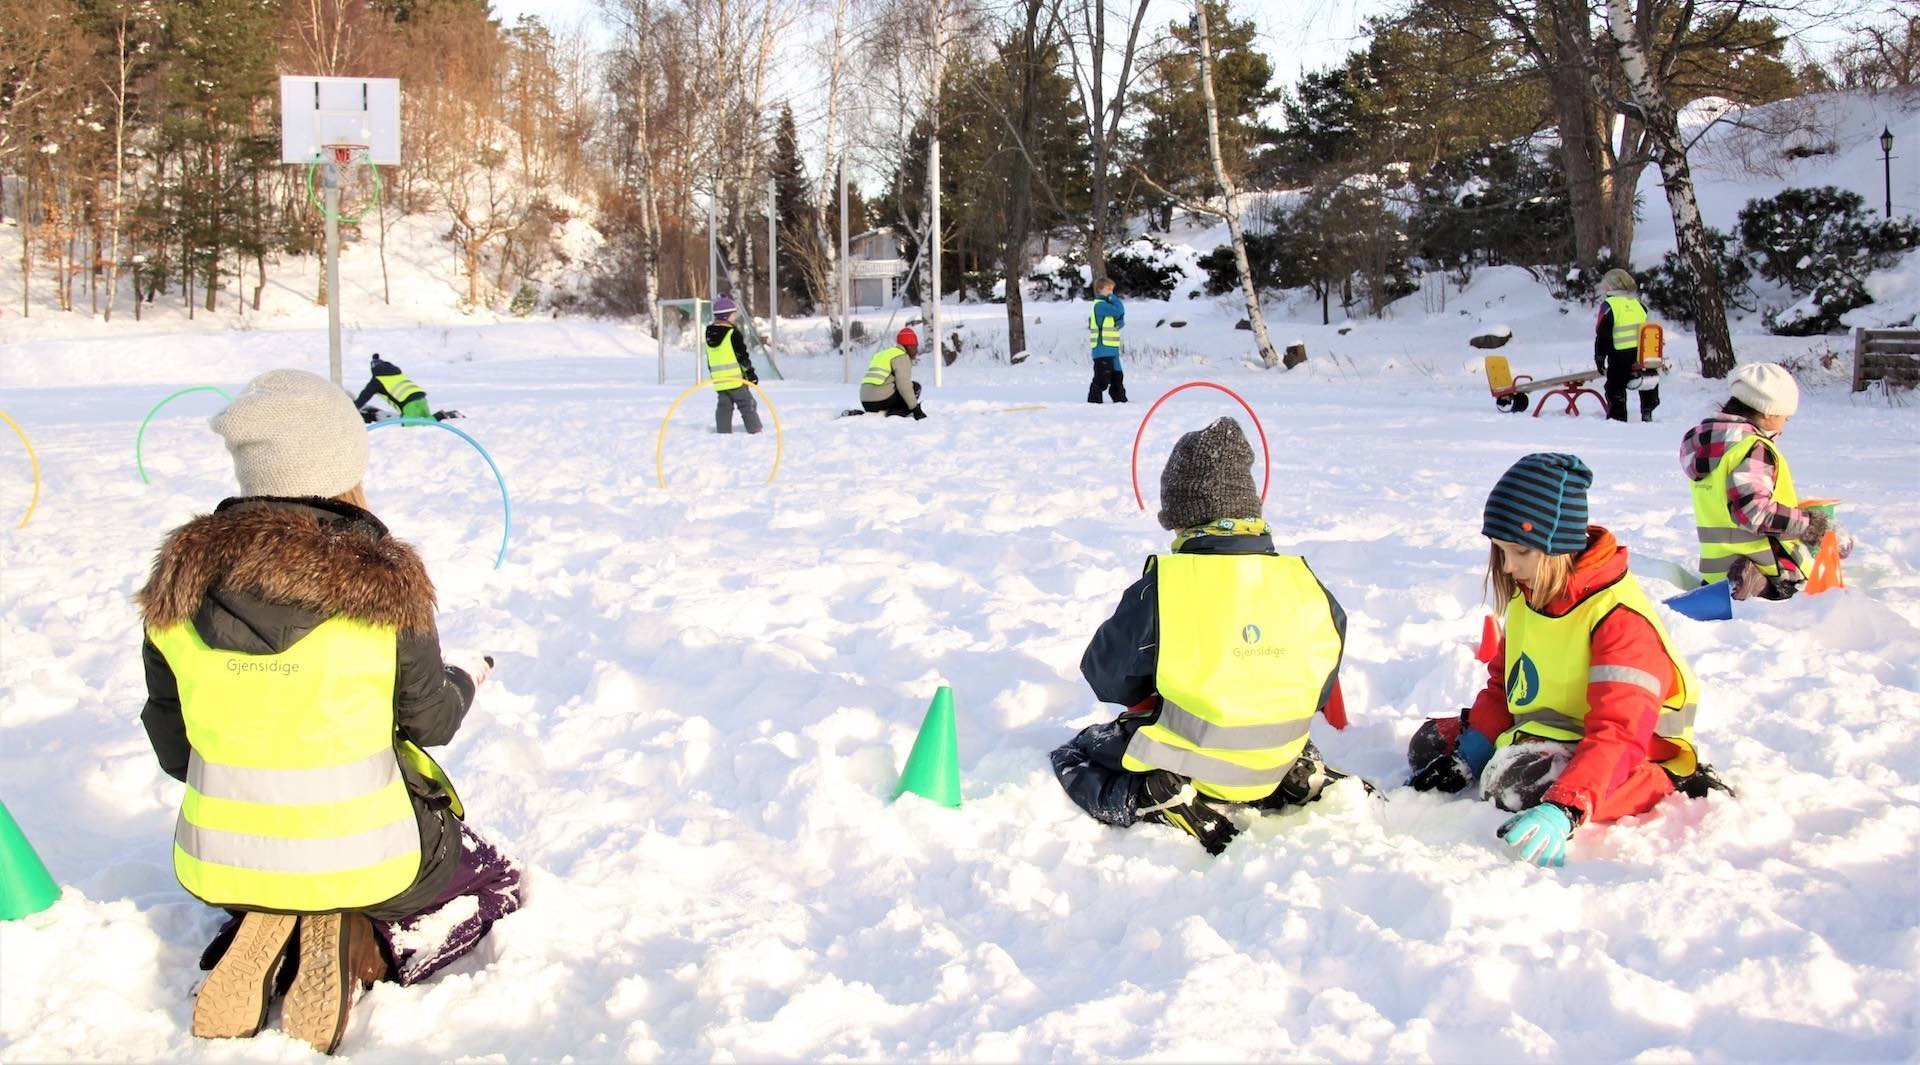 After School Care at Arendal International School